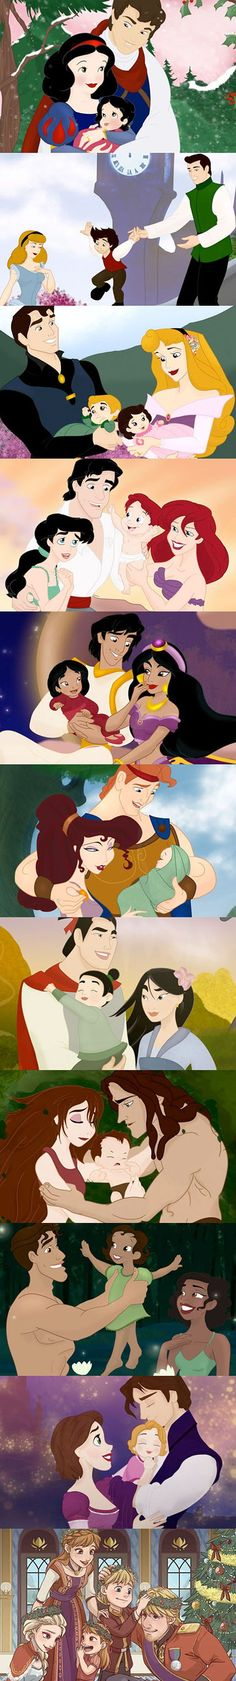 Funny pictures about Every Disney Couple Lives Happily Ever After. Oh, and cool pics about Every Disney Couple Lives Happily Ever After. Also, Every Disney Couple Lives Happily Ever After photos. Disney Pixar, Walt Disney, Disney Magic, Disney Couples, Cute Disney, Disney And Dreamworks, Disney Art, Disney Characters, Disney Princesses